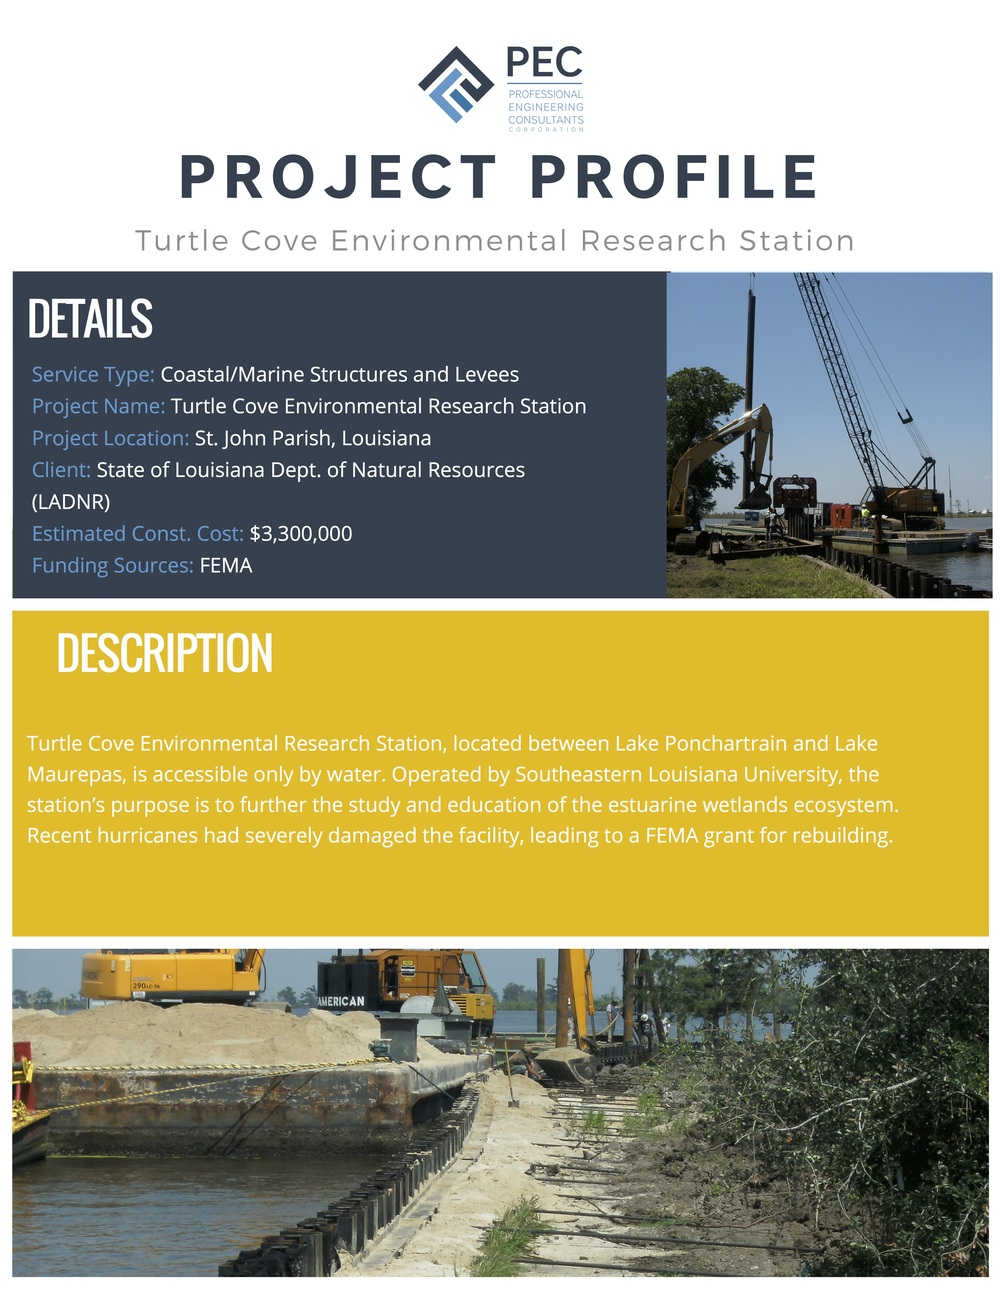 Project Profile_TurtleCoveFINAL.jpg